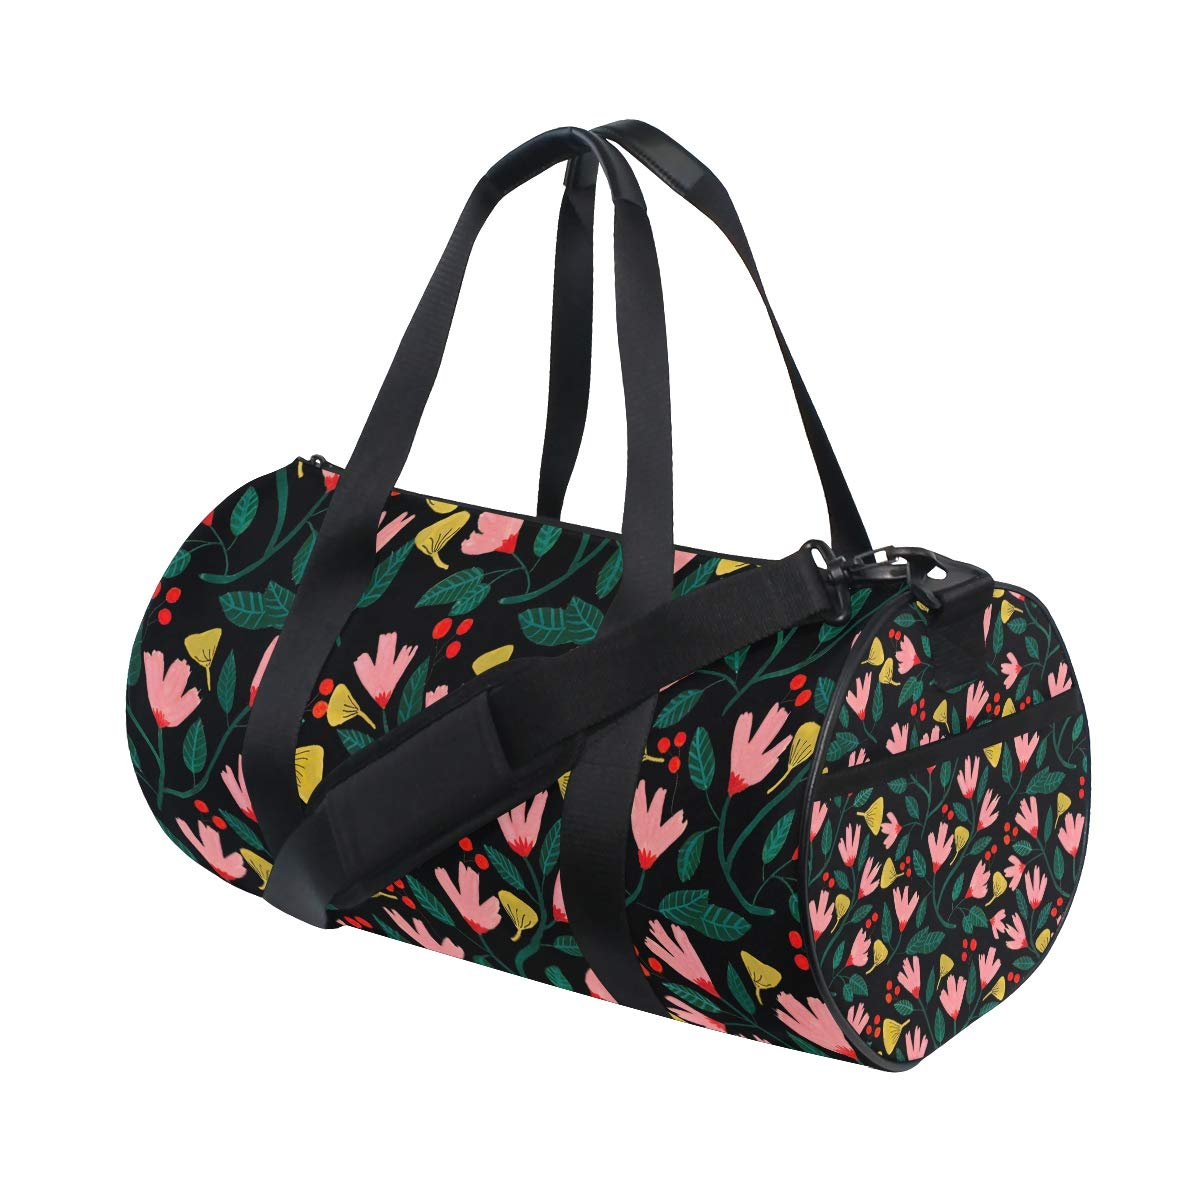 OuLian Women Gym Bag Summer Floral Mens Camp Duffel Bags Duffle Luggage Travel Bag